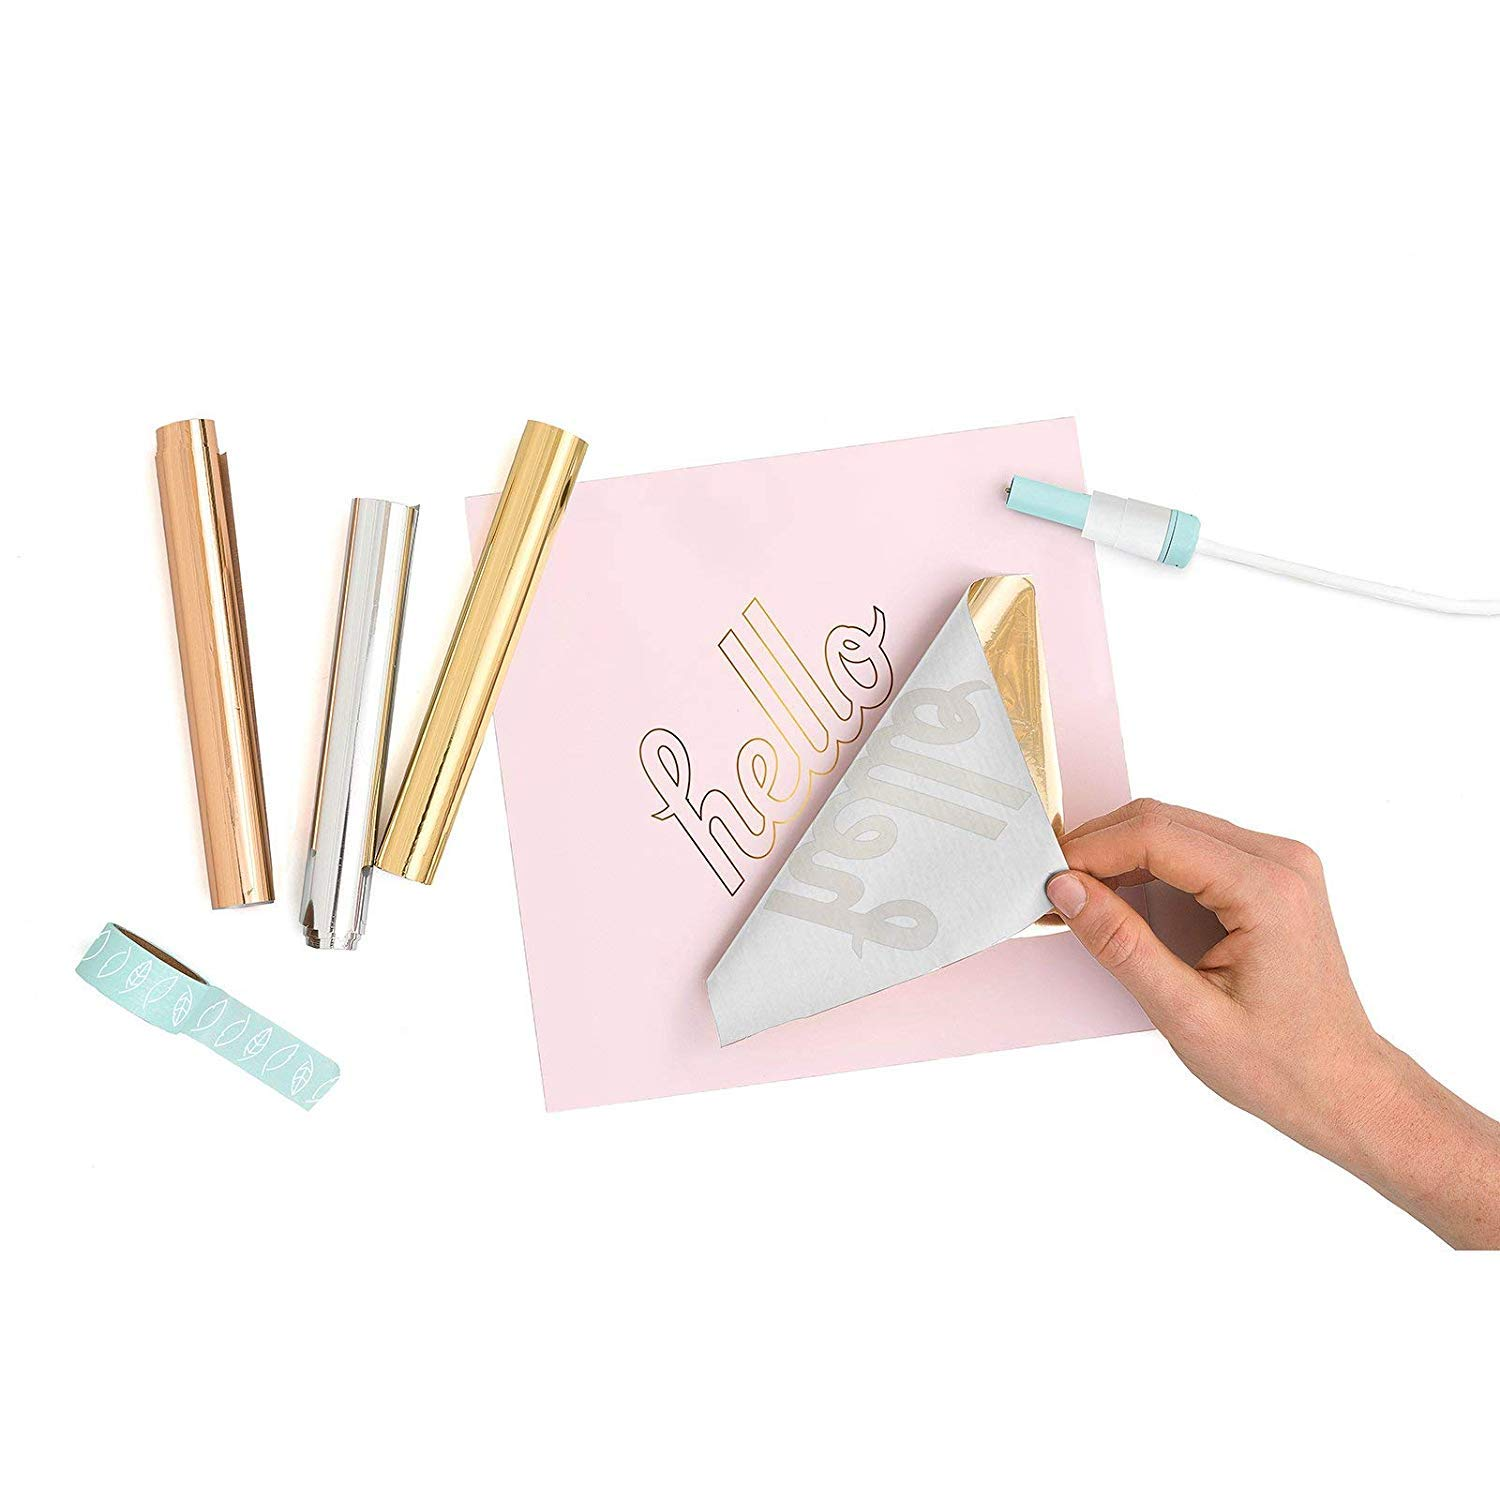 Foil Quill All-in-One Bundle, 3 Quill Sizes, Adapters, Foils, Tape, Design Card by We R Memory Keepers (Image #7)